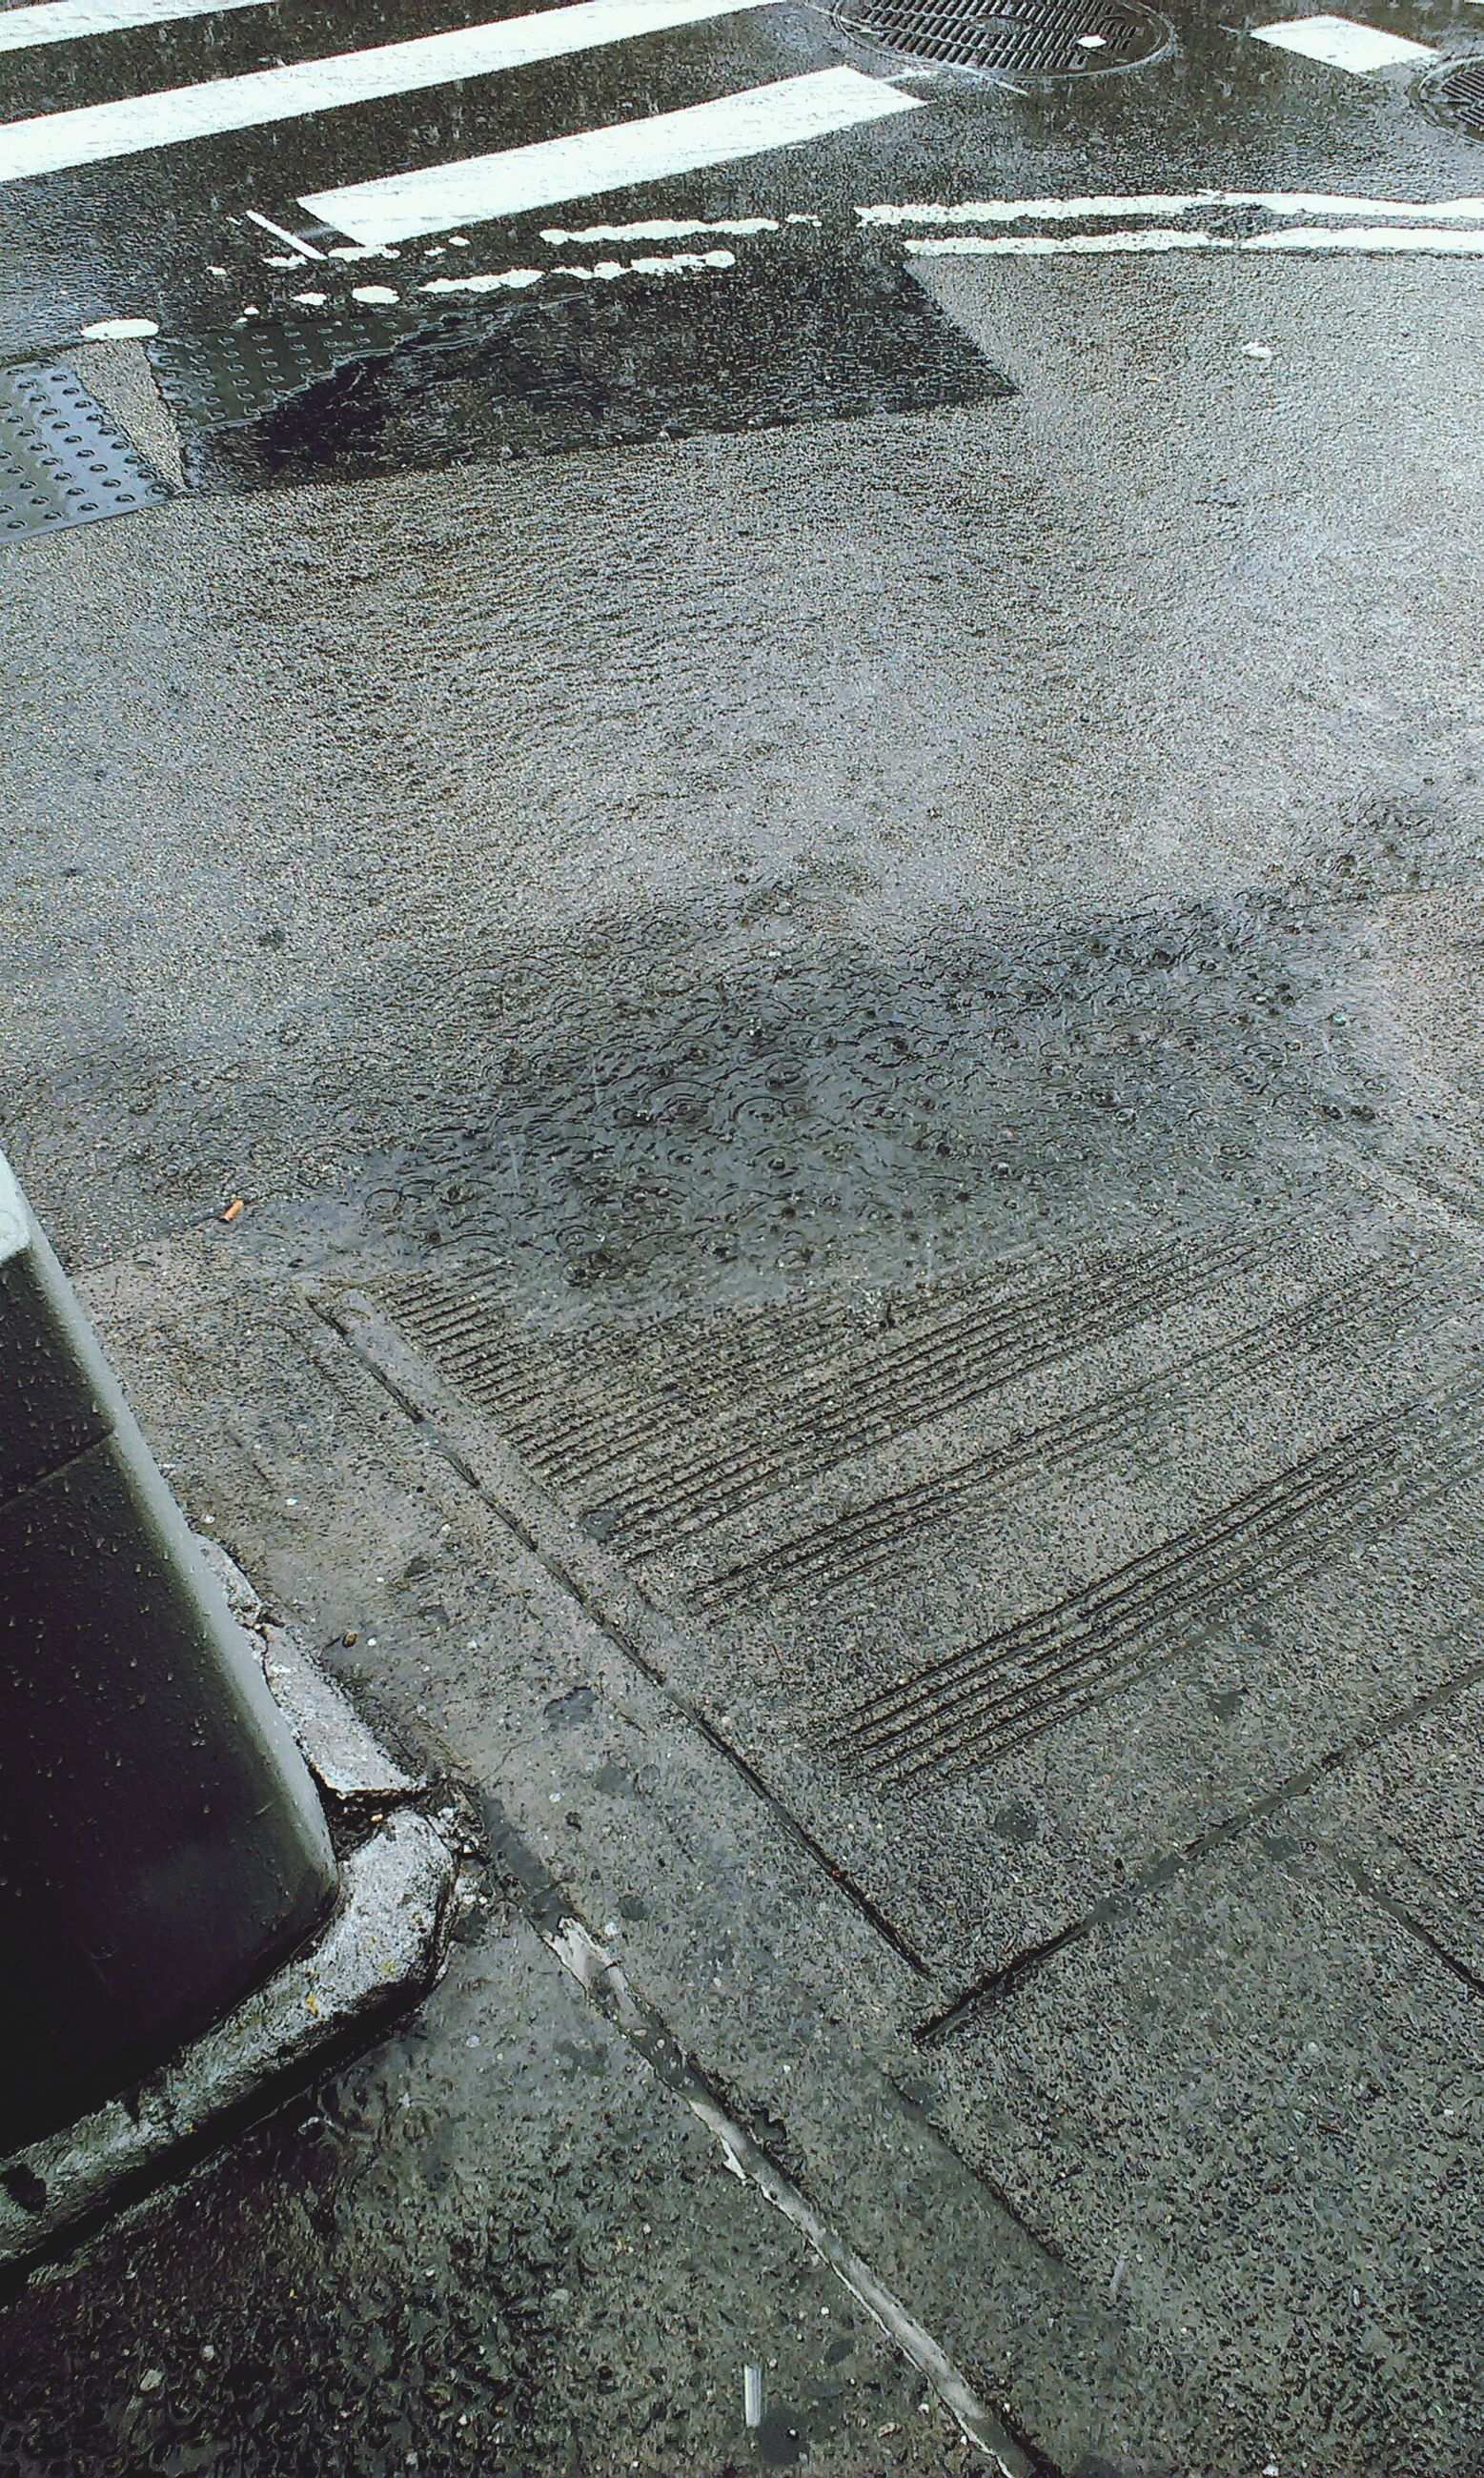 asphalt, street, road, high angle view, road marking, transportation, puddle, wet, day, outdoors, textured, no people, water, sunlight, full frame, sidewalk, rain, season, close-up, weather